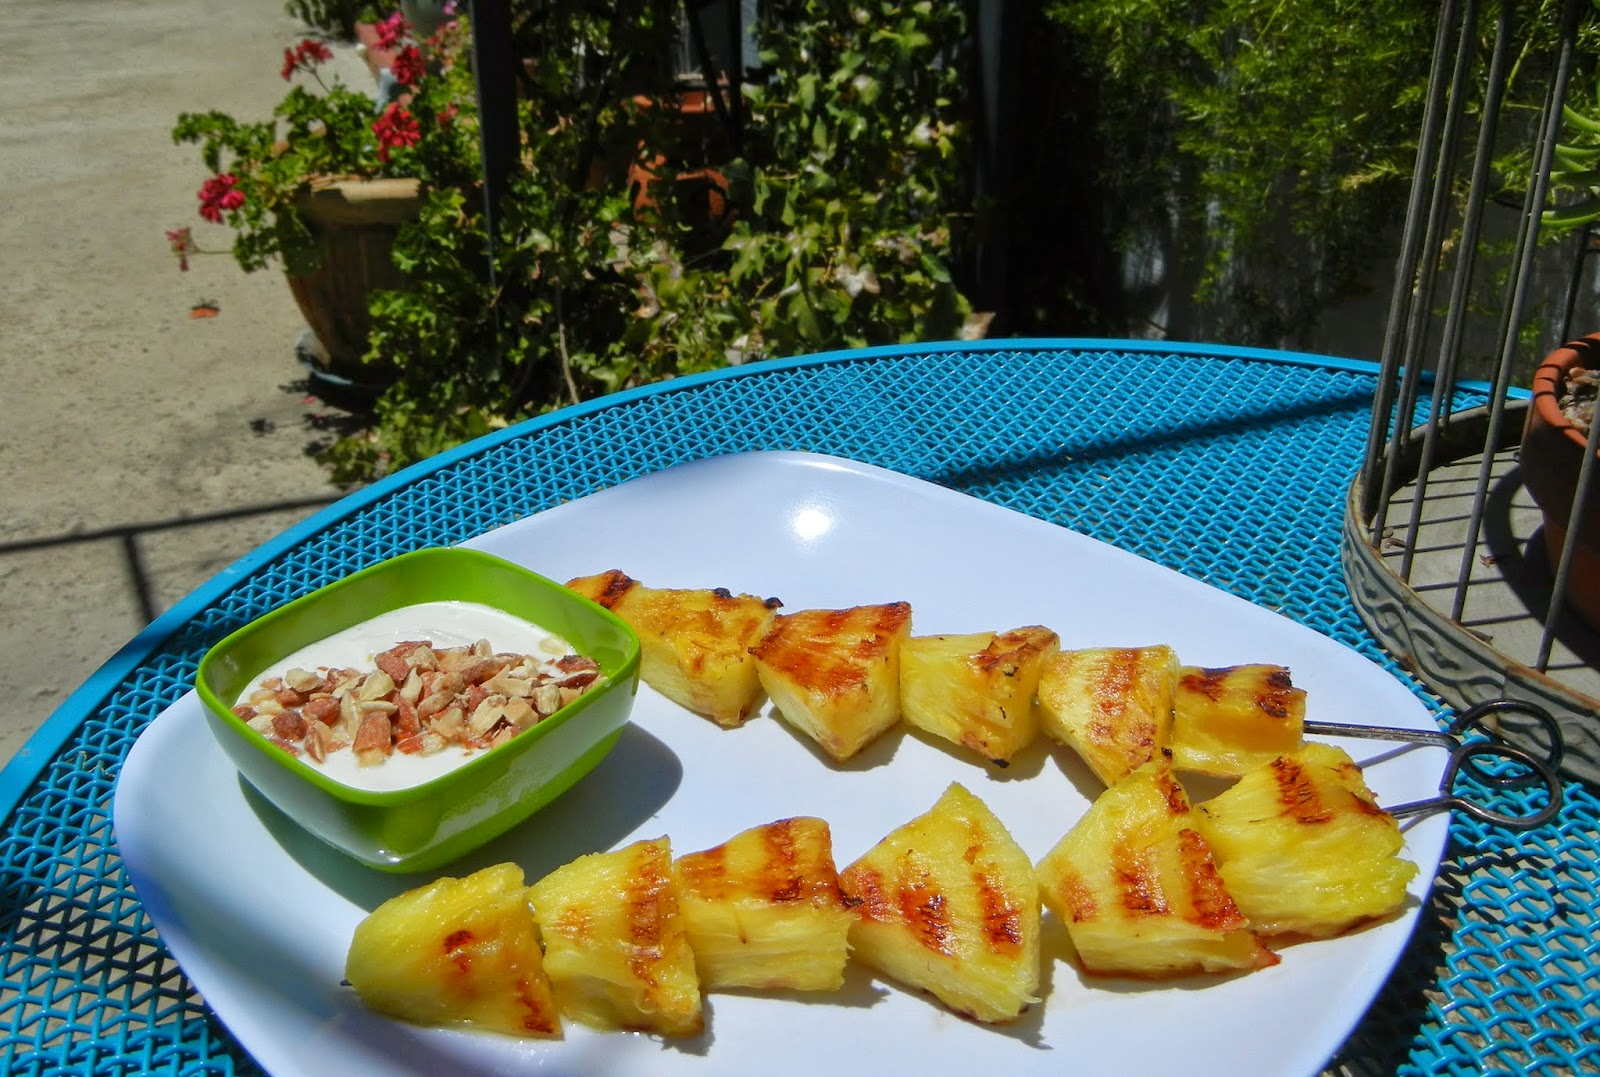 Grilled+Pineapple+Skewers+Toasted+Coconut+Almond+Greek+Yogurt+Dip+BBQ+Dessert+Eggface Weight Loss Recipes Summer Fun With Blue Diamond Almonds